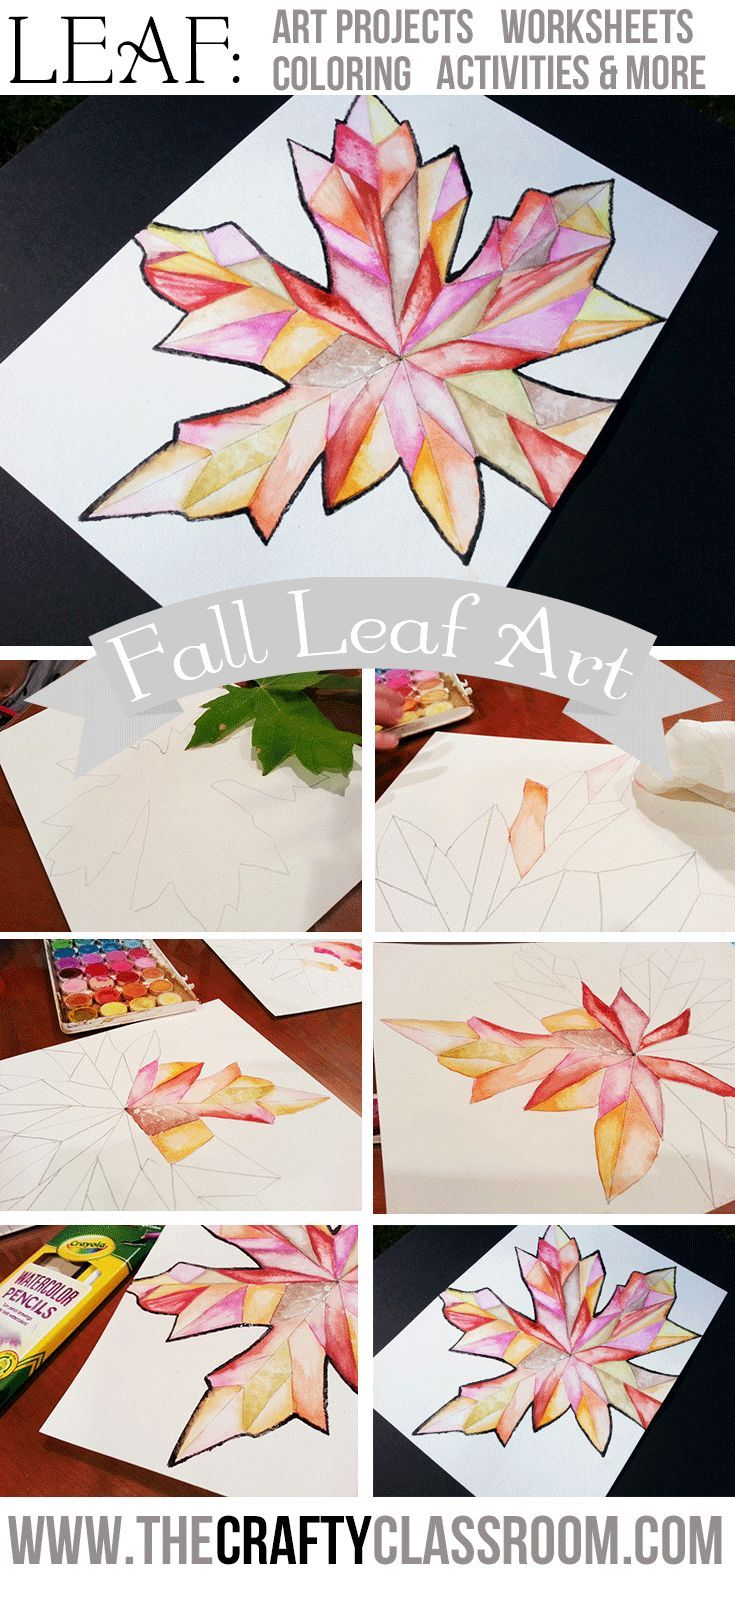 Fall Leaf Art Project. Great for the beginning of the year or when studying seasons.